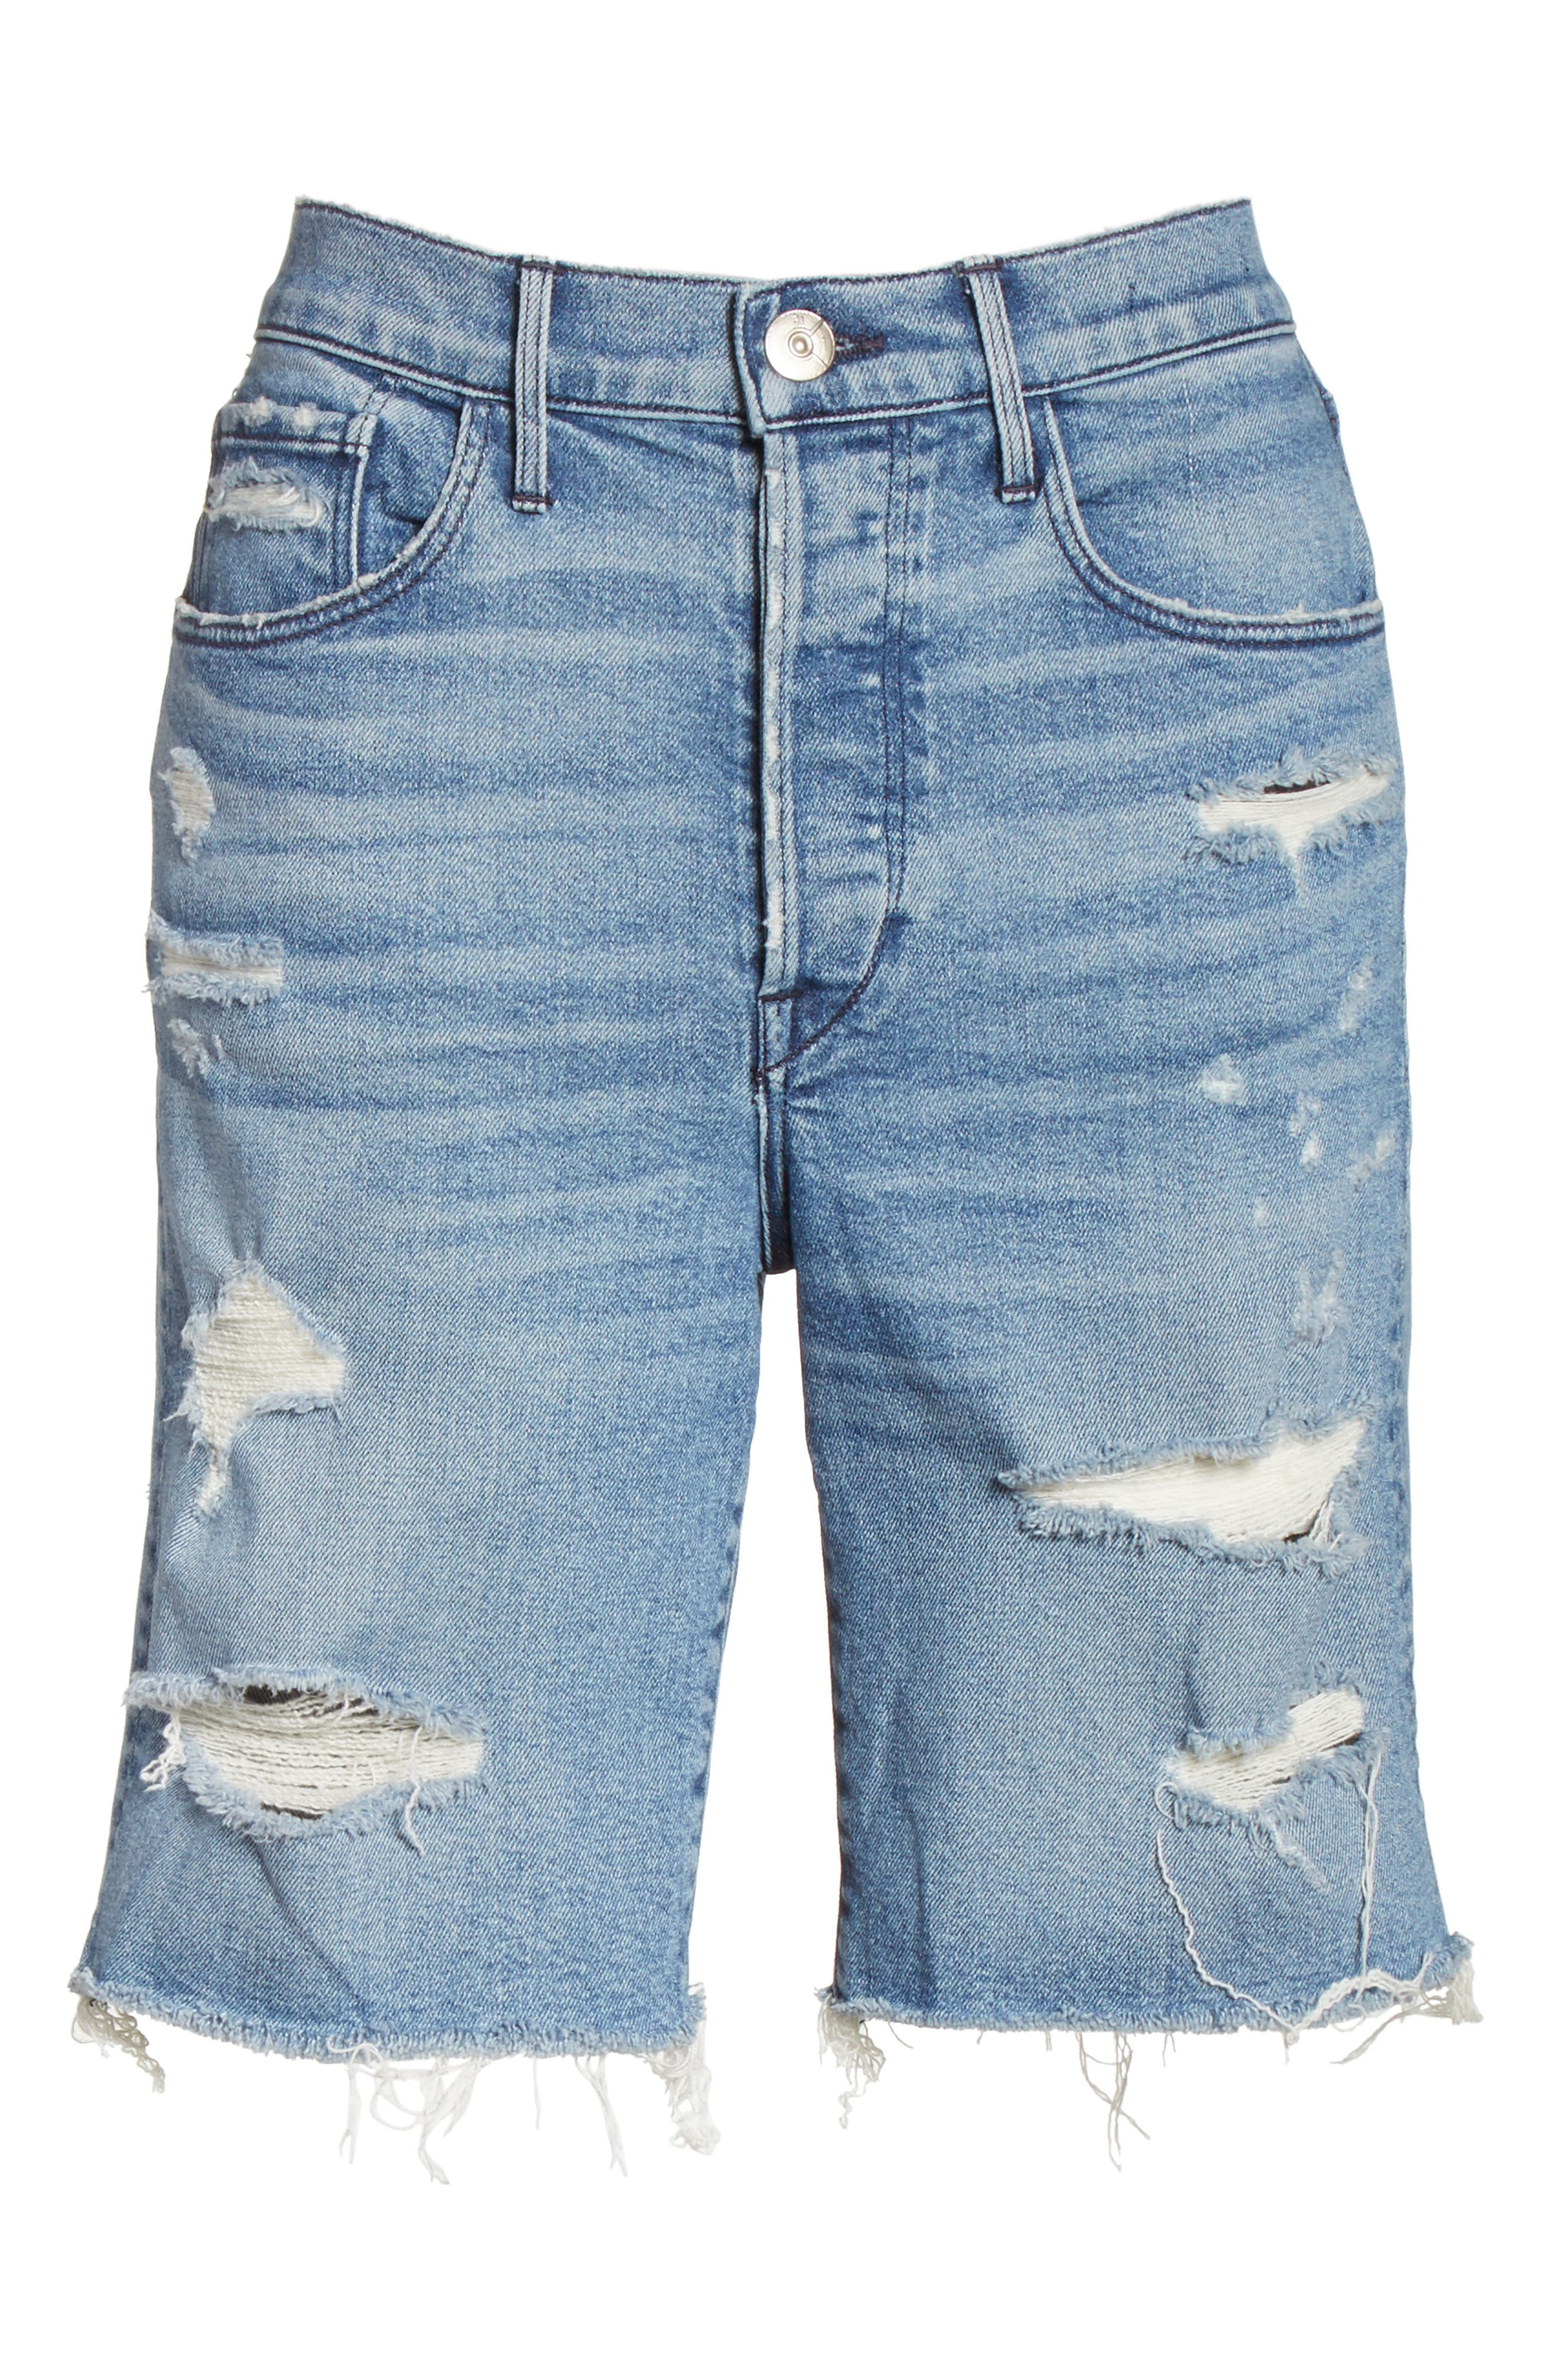 W3 Ryder Ripped Denim Shorts,                             Alternate thumbnail 6, color,                             Sutra